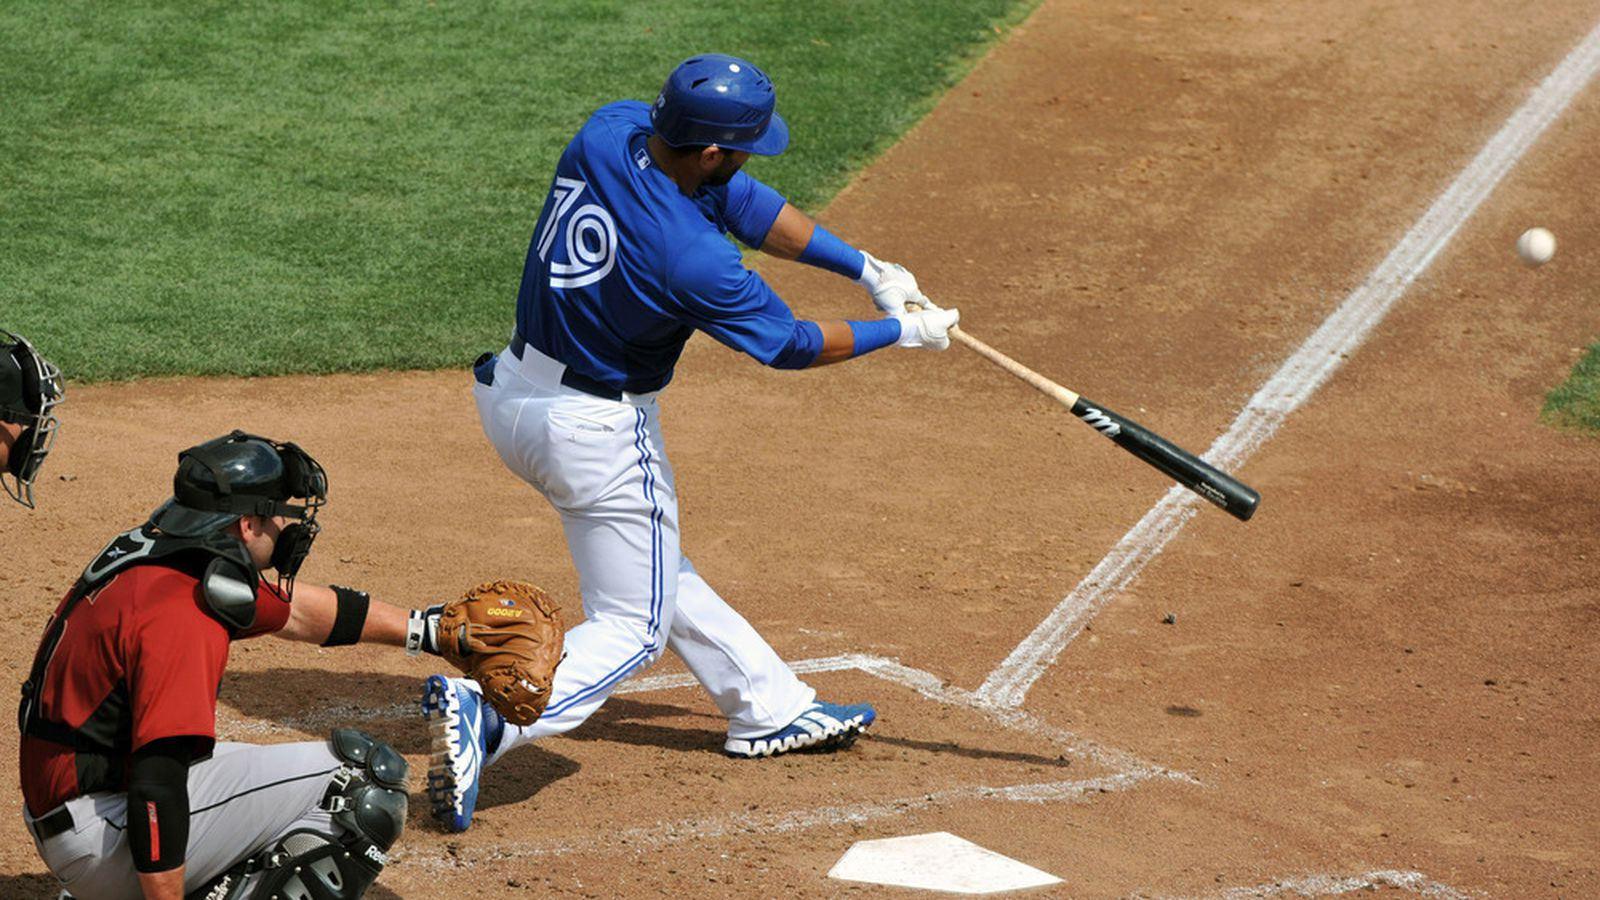 The Toronto Blue Jays Will Spend After They Win